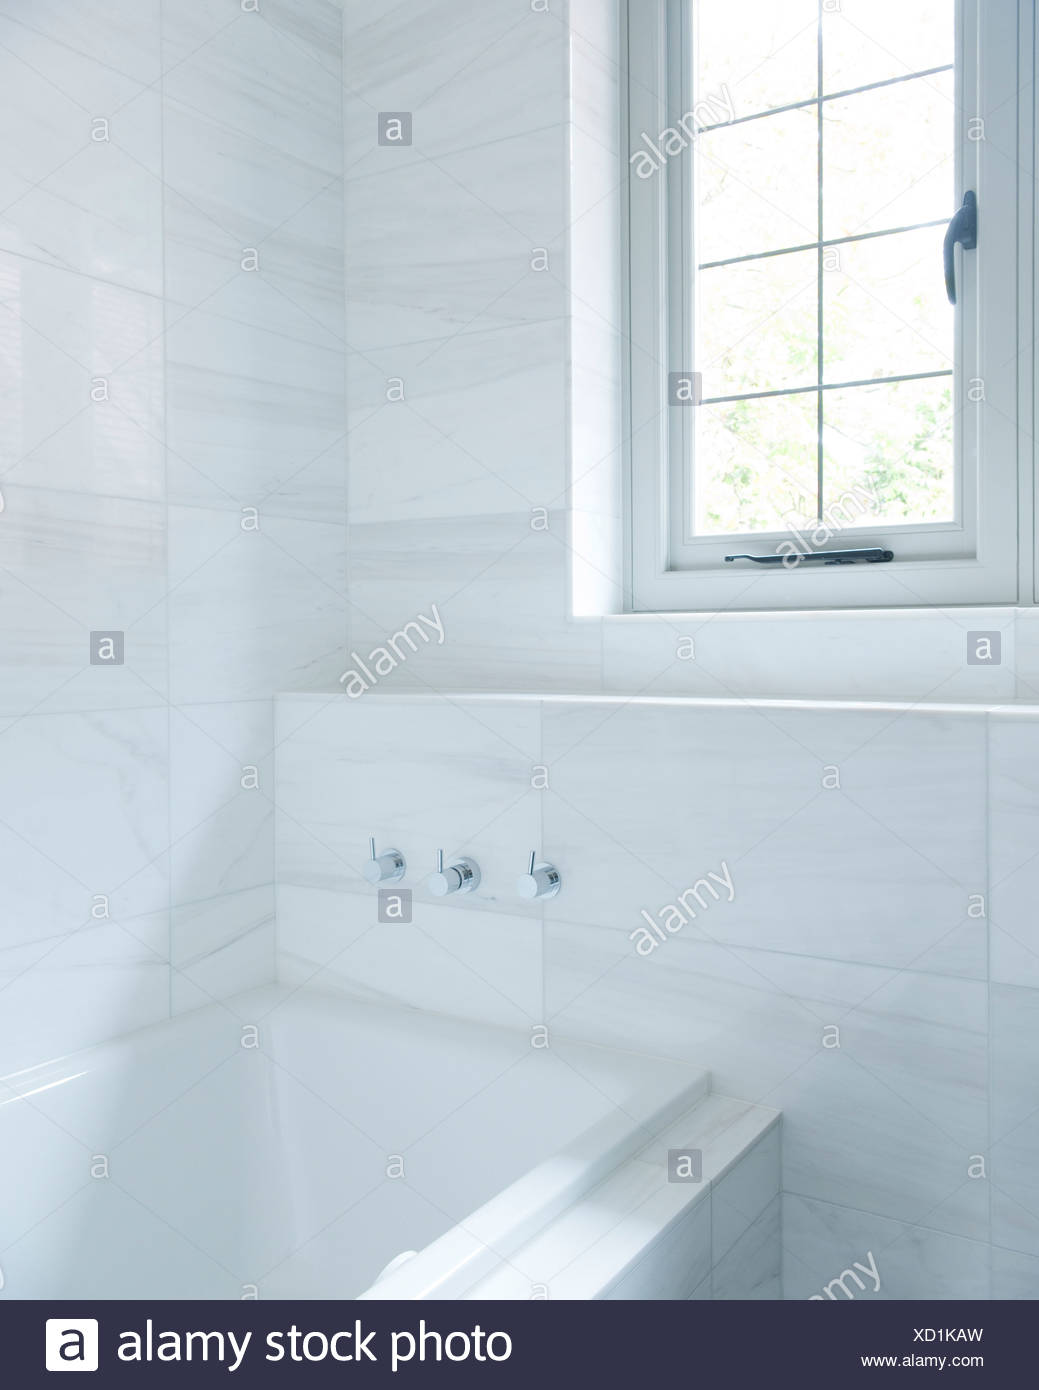 A bathroom with white marble tiles Stock Photo: 283393569 - Alamy